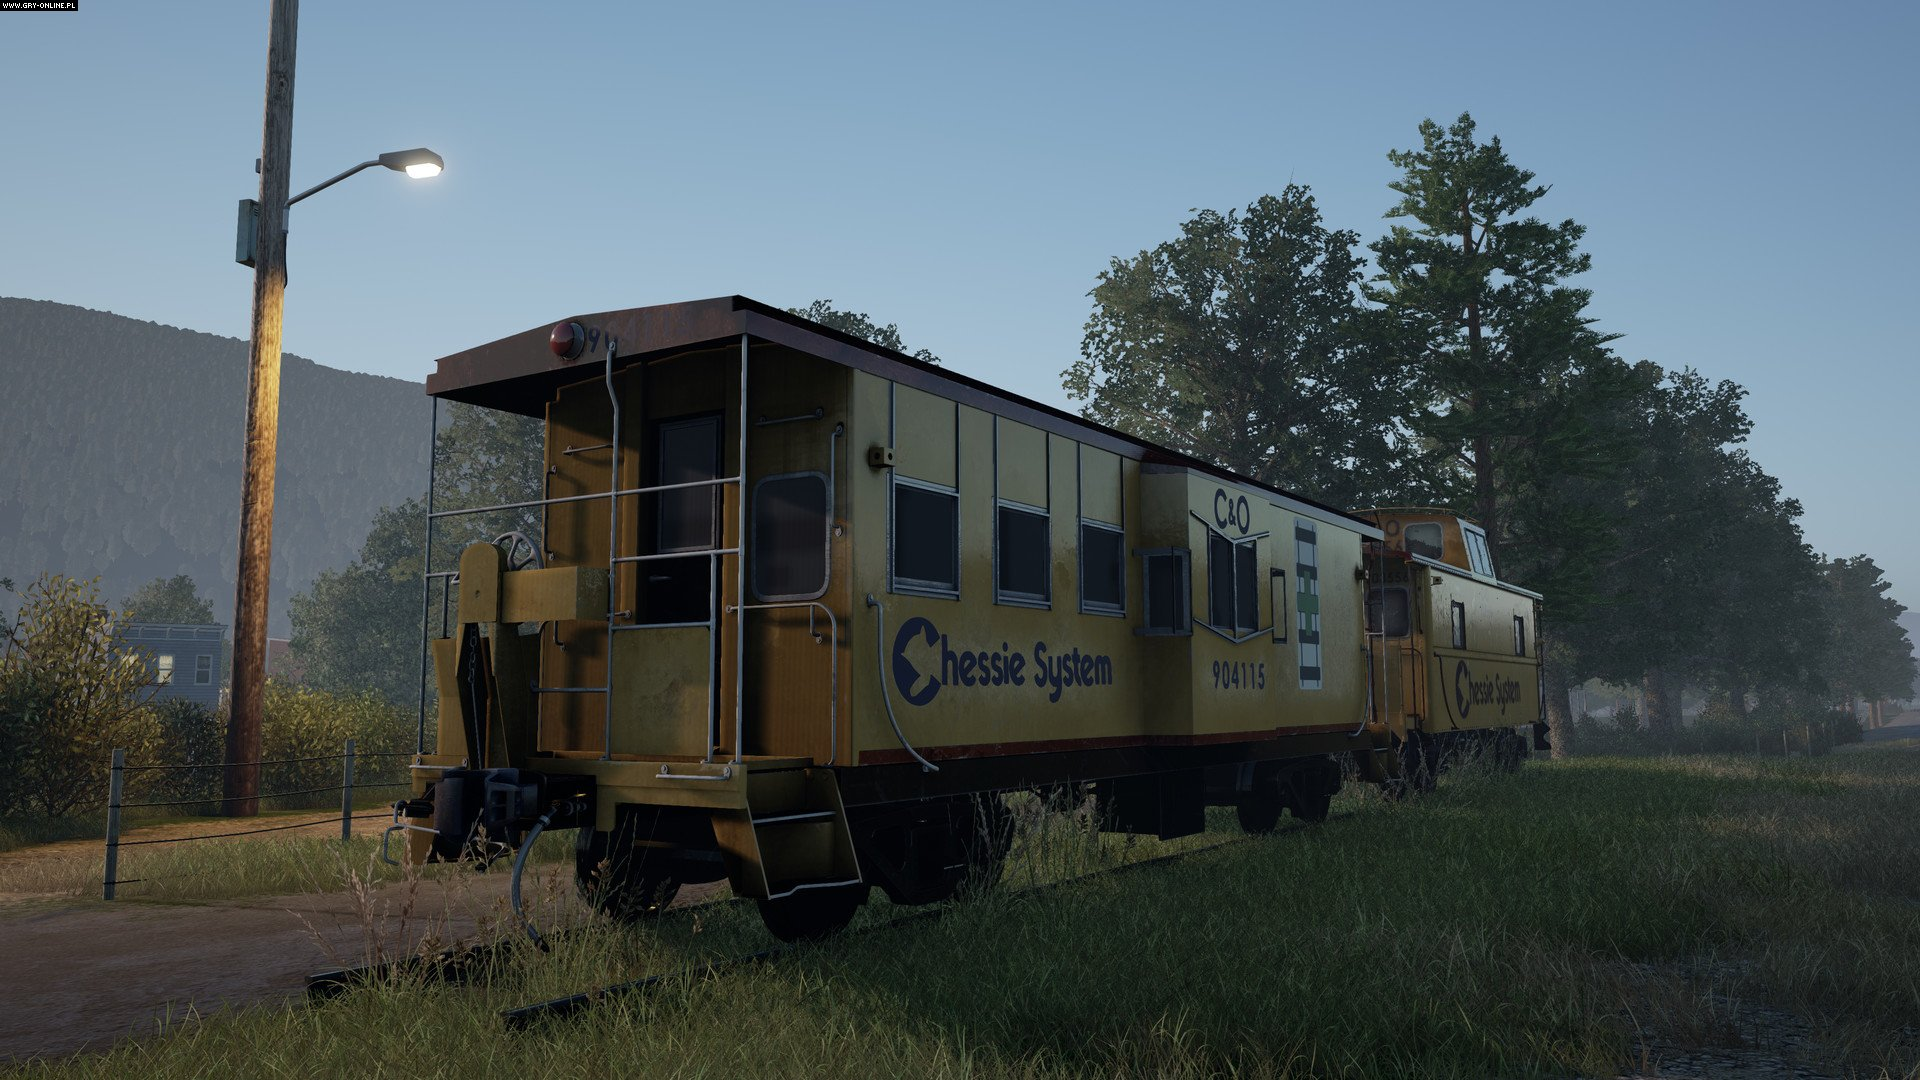 Train Sim World: CSX Heavy Haul PC, XONE Games Image 2/8, Dovetail Games/Rail Simulator Developments